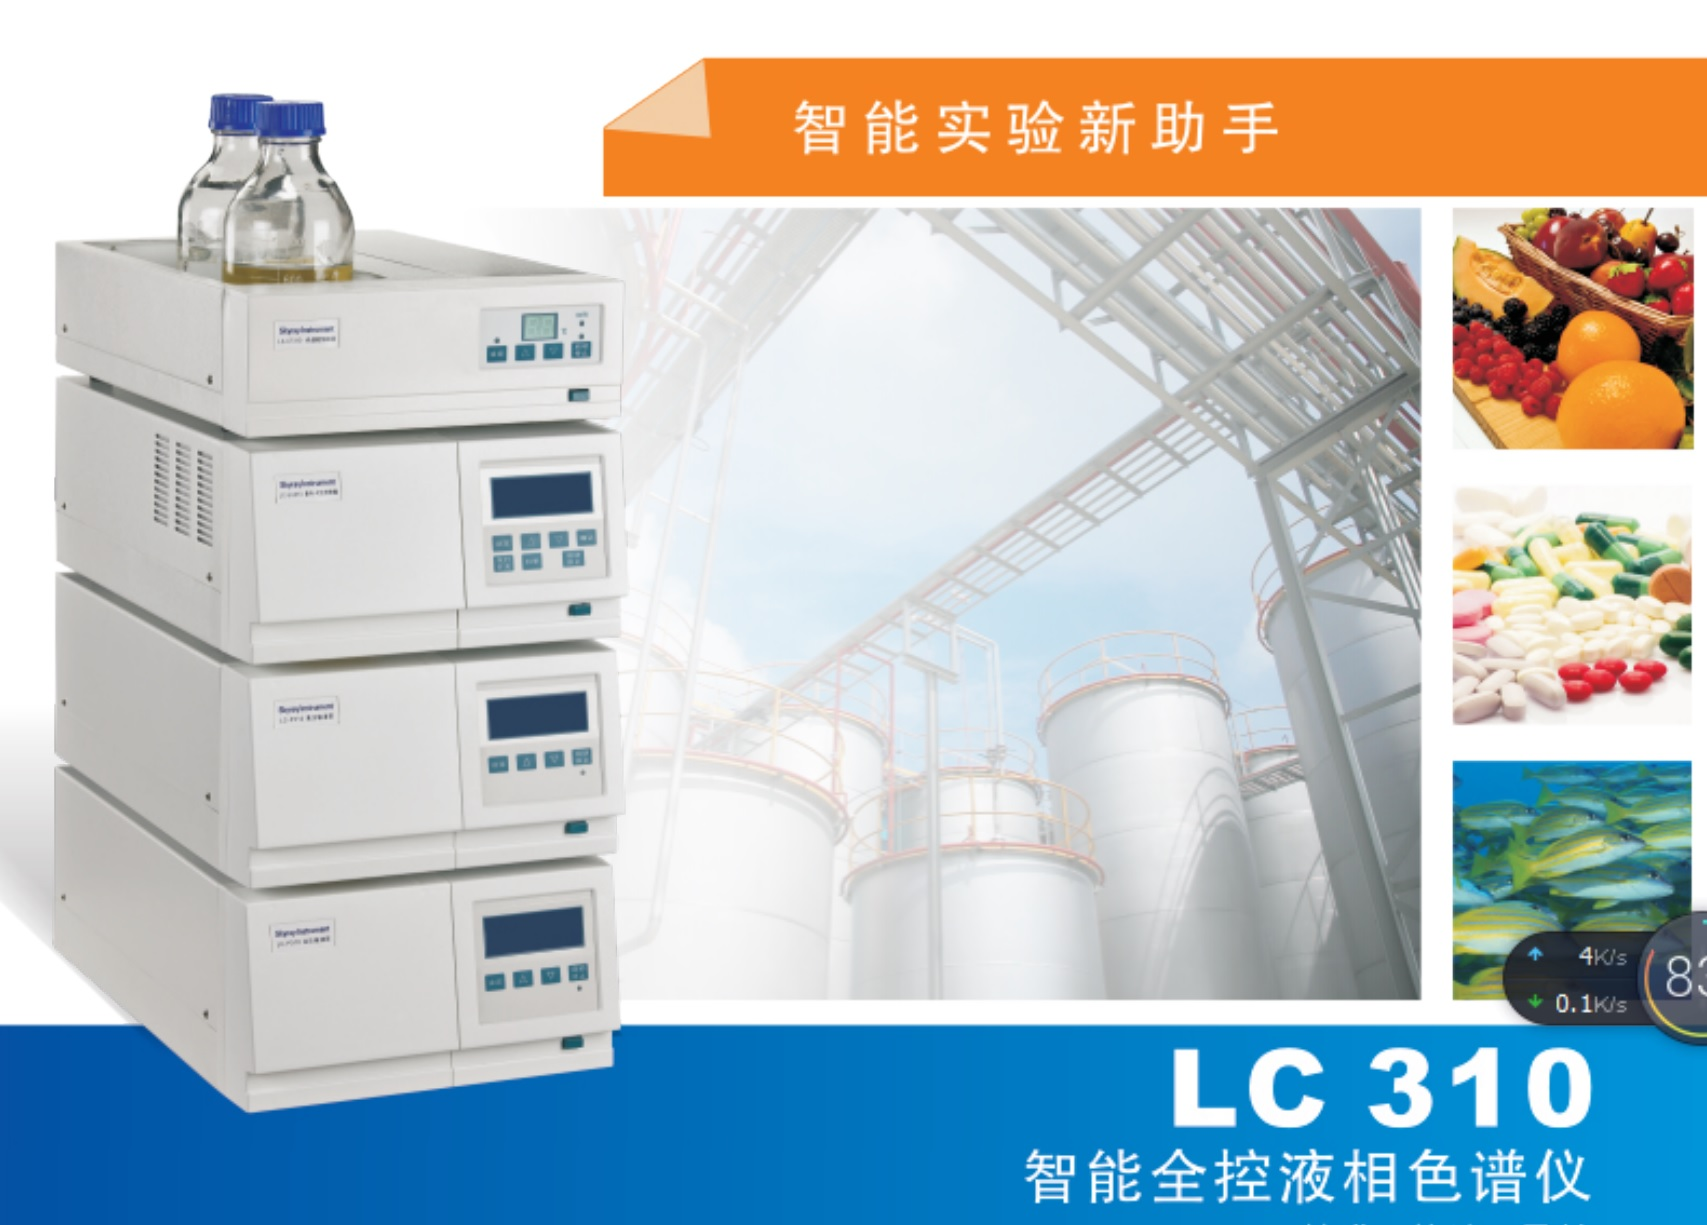 LC-310 liquid chromatography for ROHS2.0 o-phthalate two in electrical and electronic products-Jiangsu Skyray Instrument Co., Ltd.